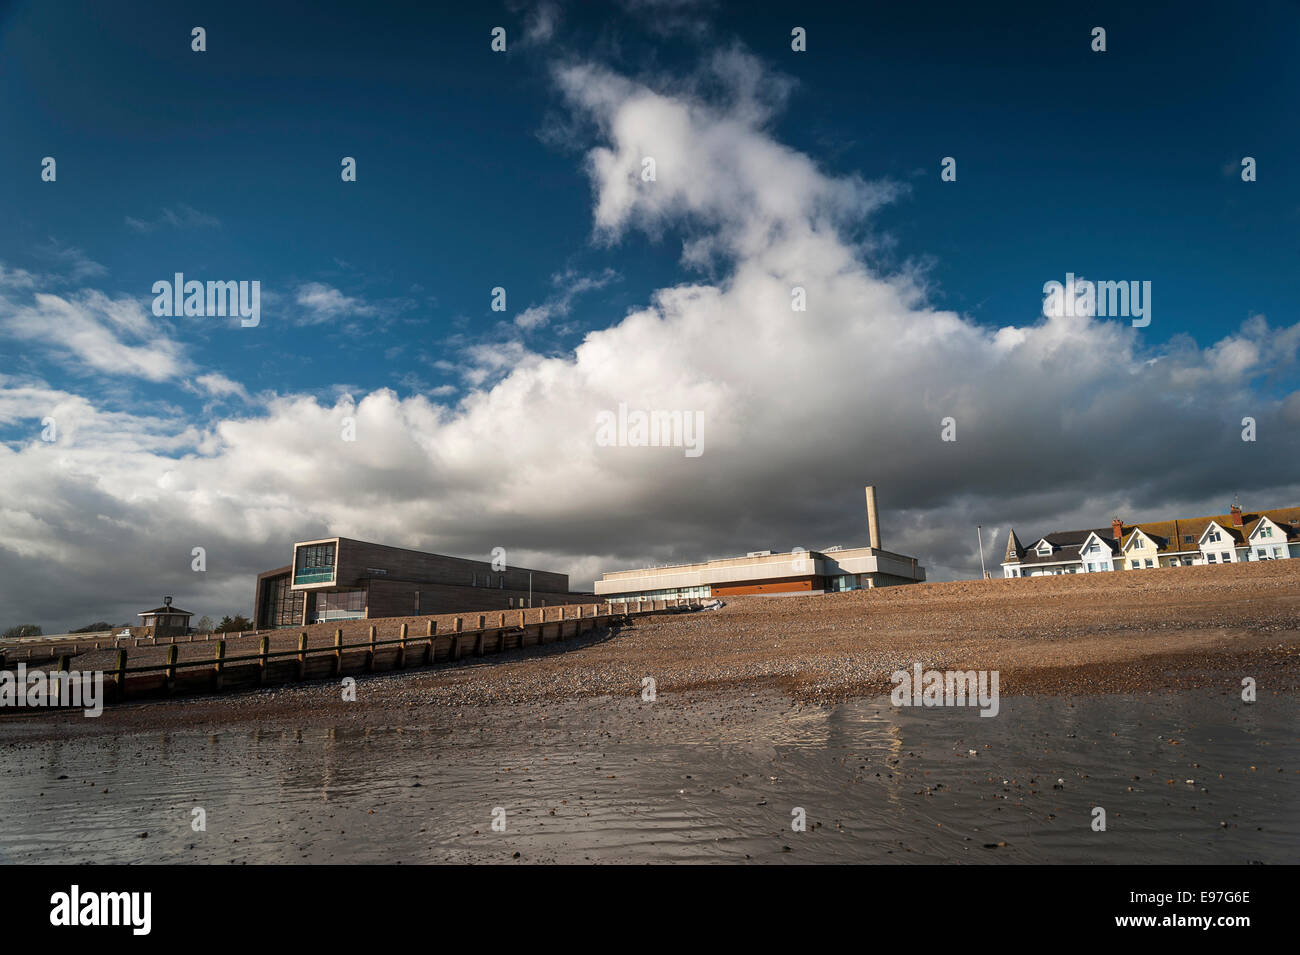 Splashpoint Pool and the redundant Aquarena on Worthing seafront. - Stock Image